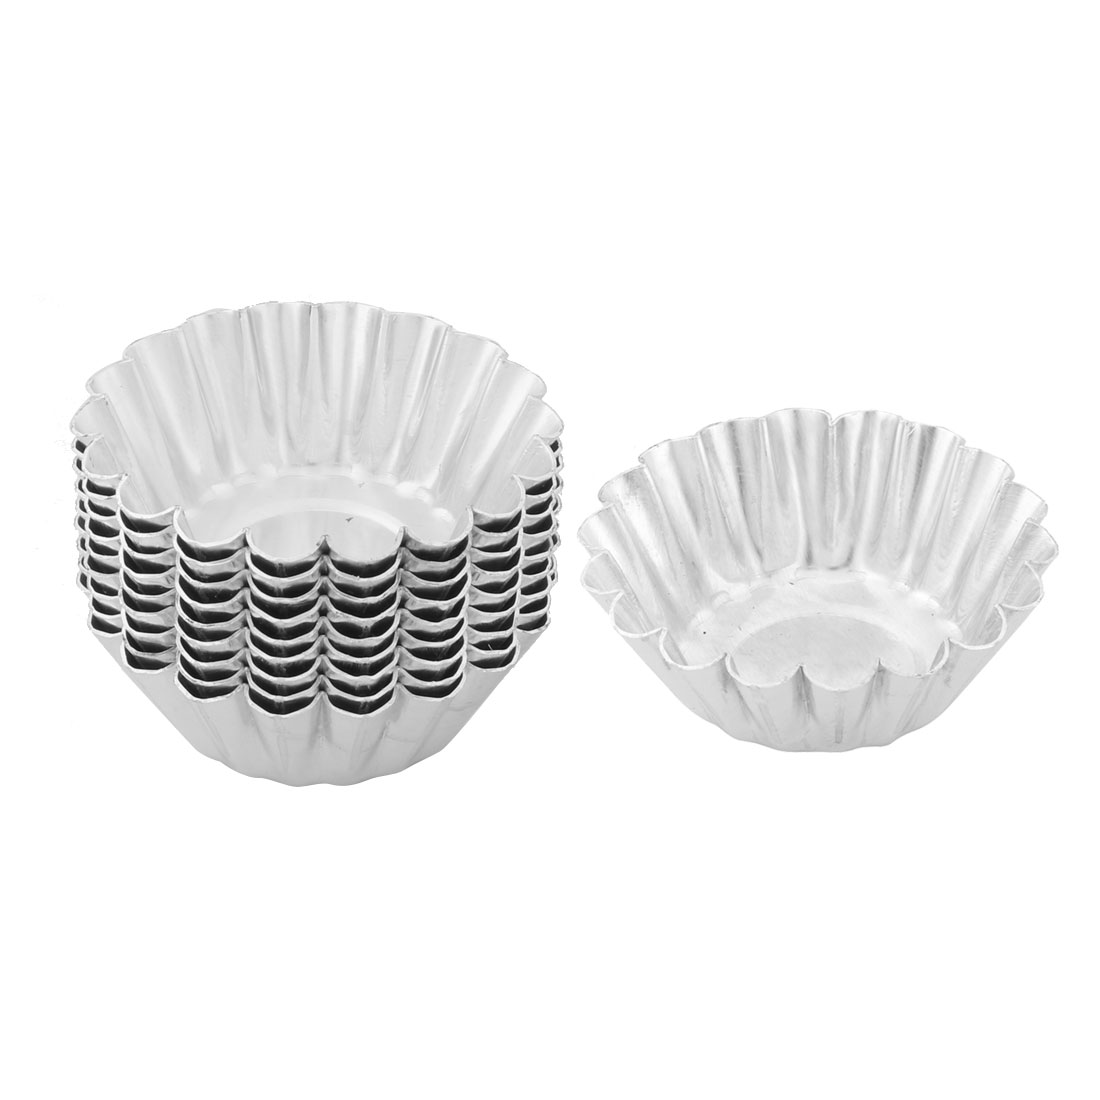 Household Stainless Steel Flower Shaped Cake Egg Pudding Mold Silver Tone 10 Pcs